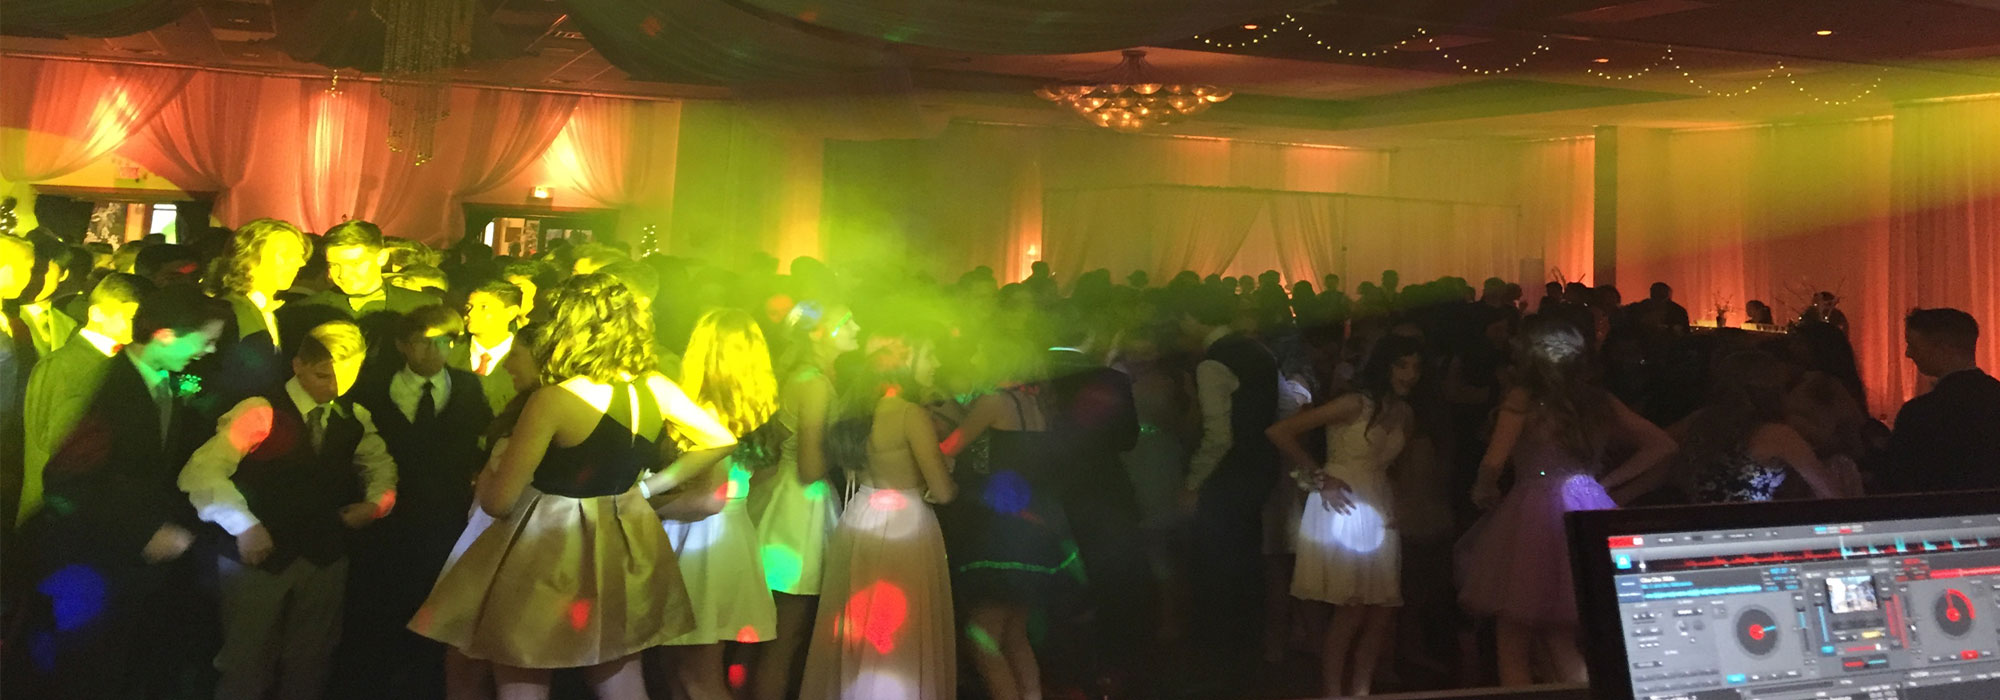 Crew Entertainment Professional DJ for Proms